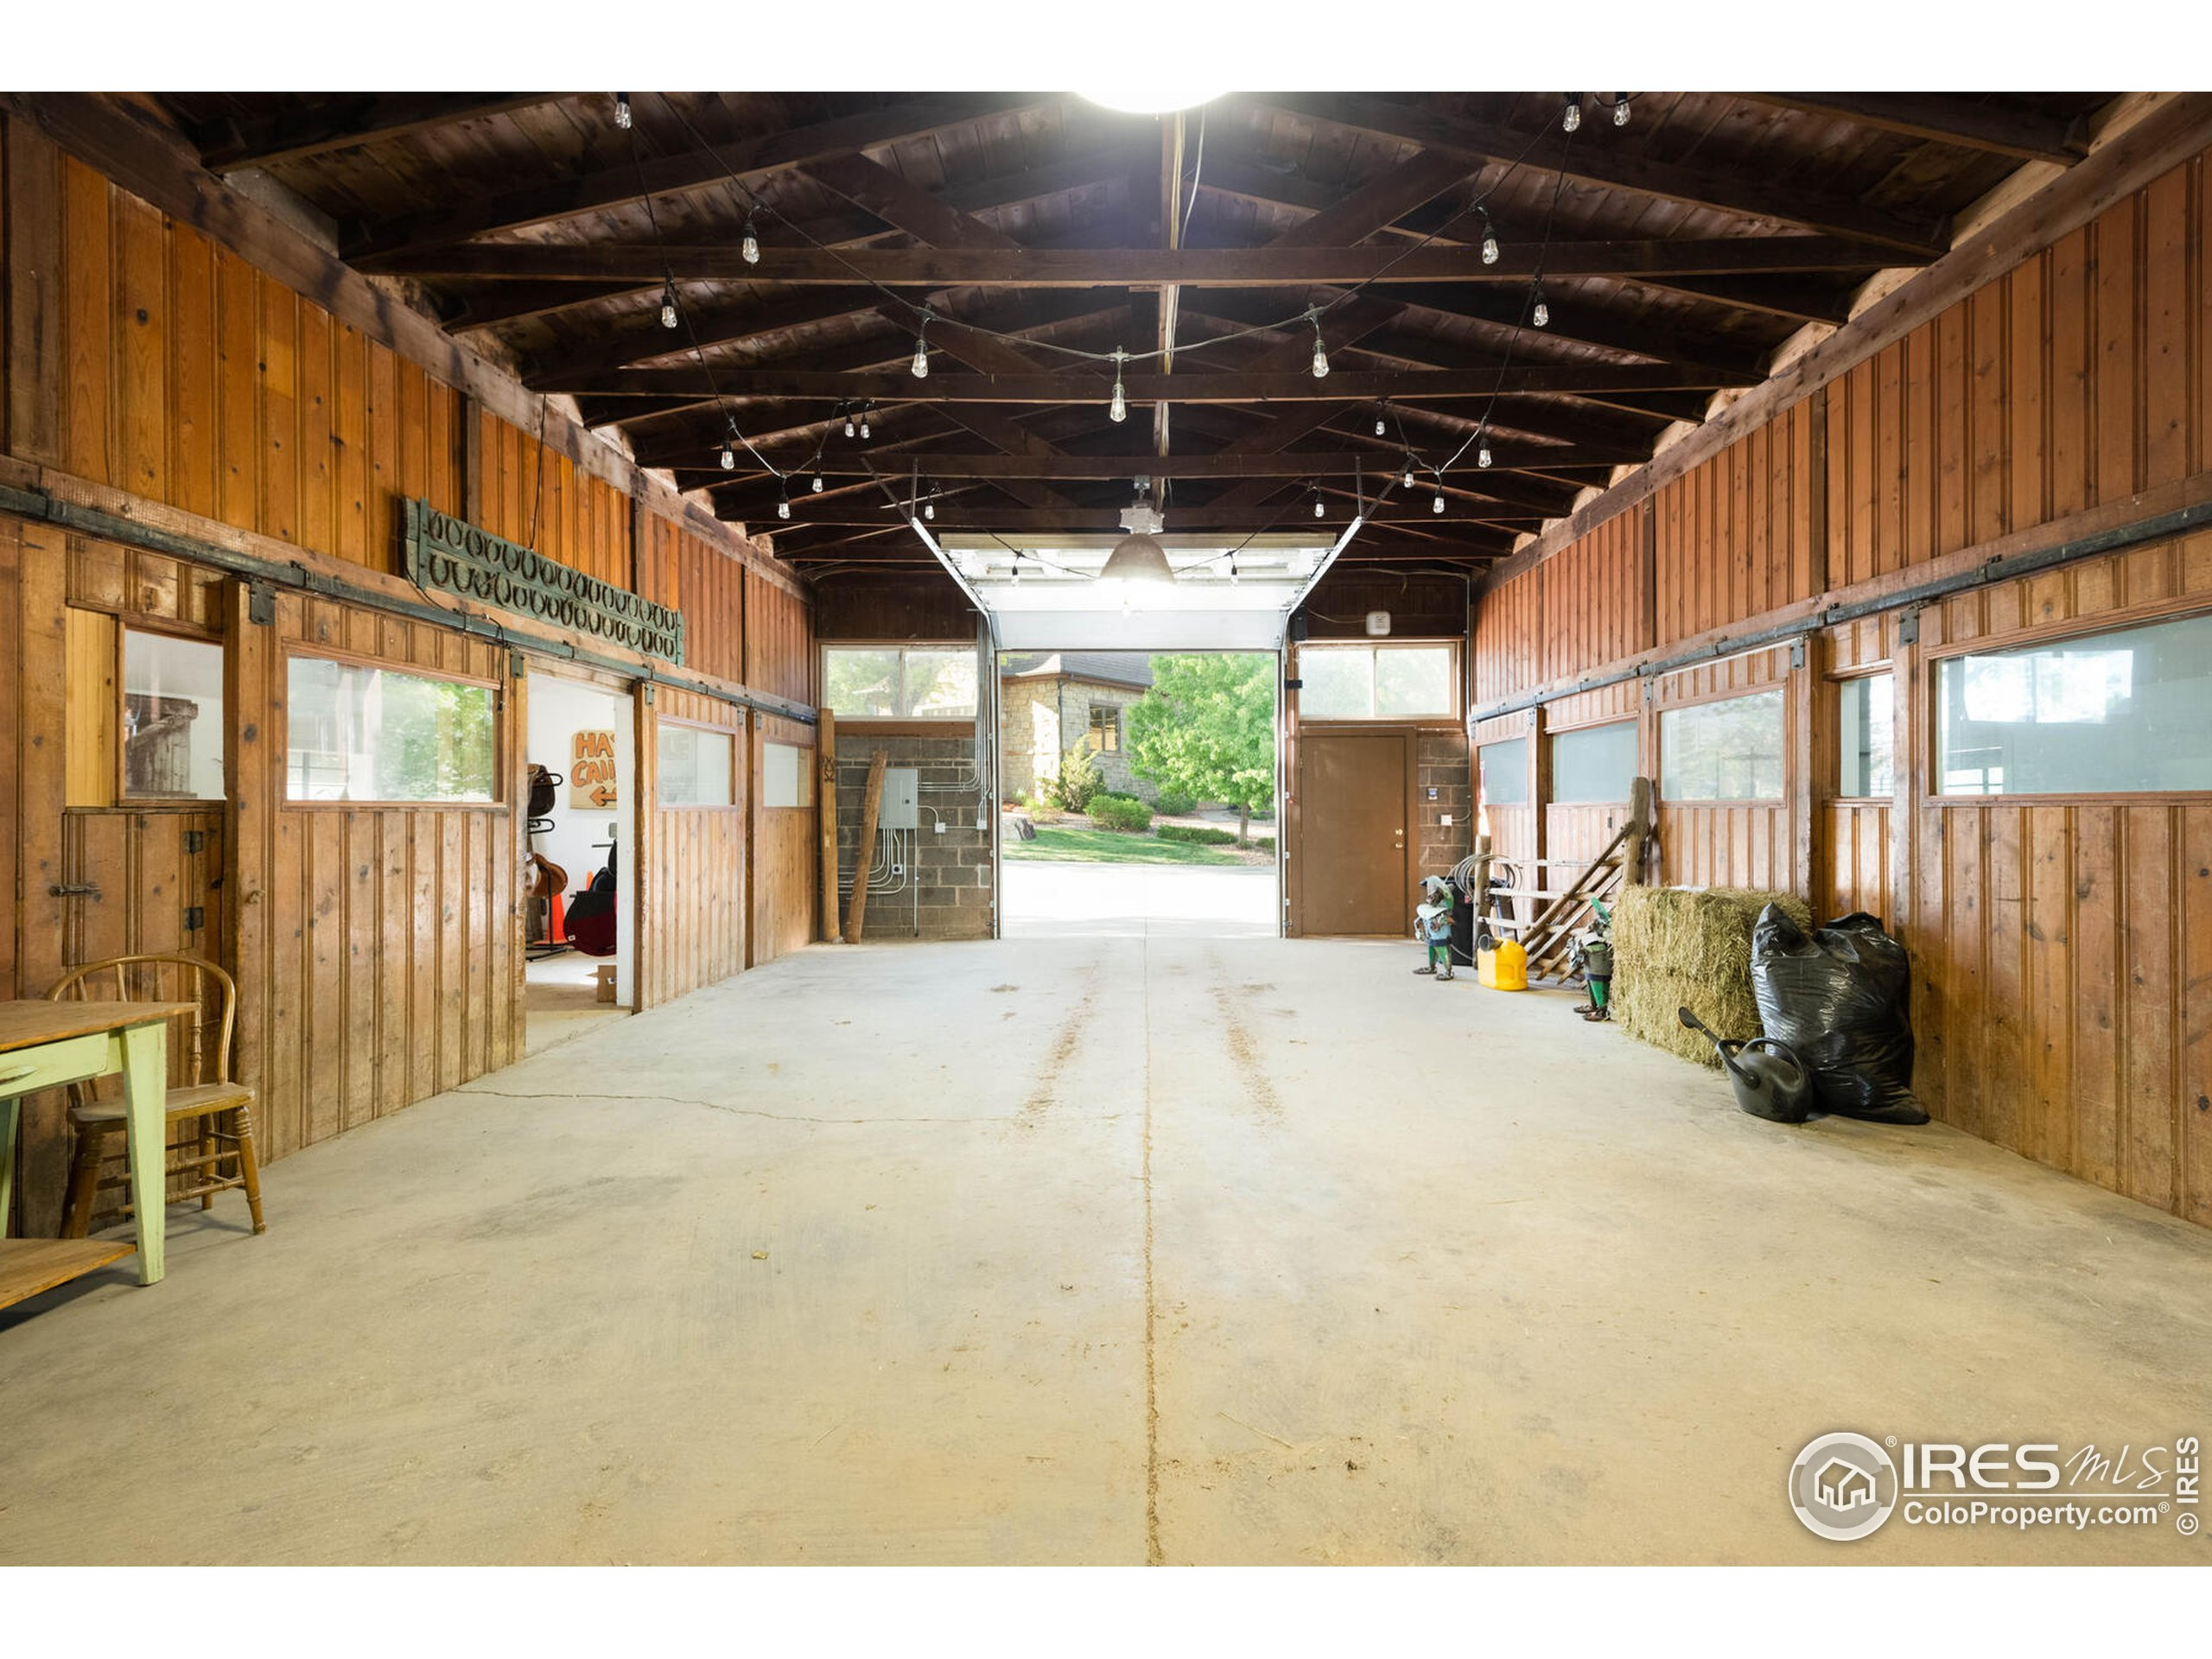 2580 Sq. Ft. Horse Stable with 6 Box Stalls, Tack Room, Tool Room, Office and Bath